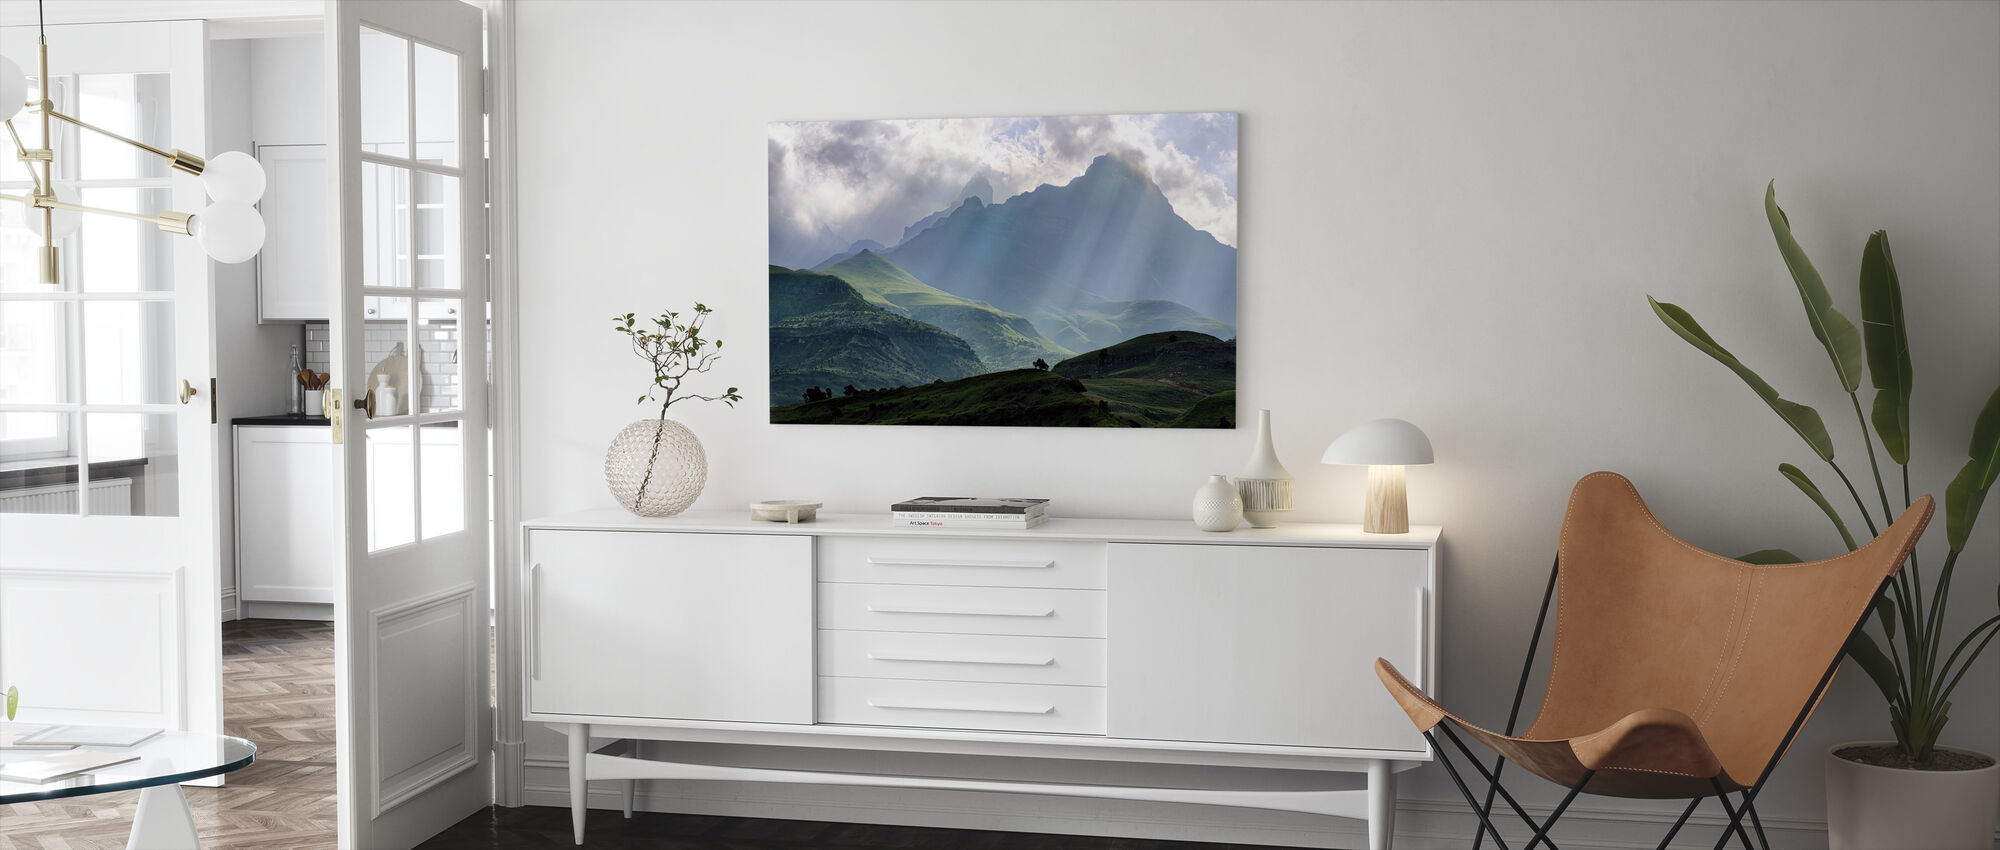 Mnweni Rays - Canvas print - Living Room